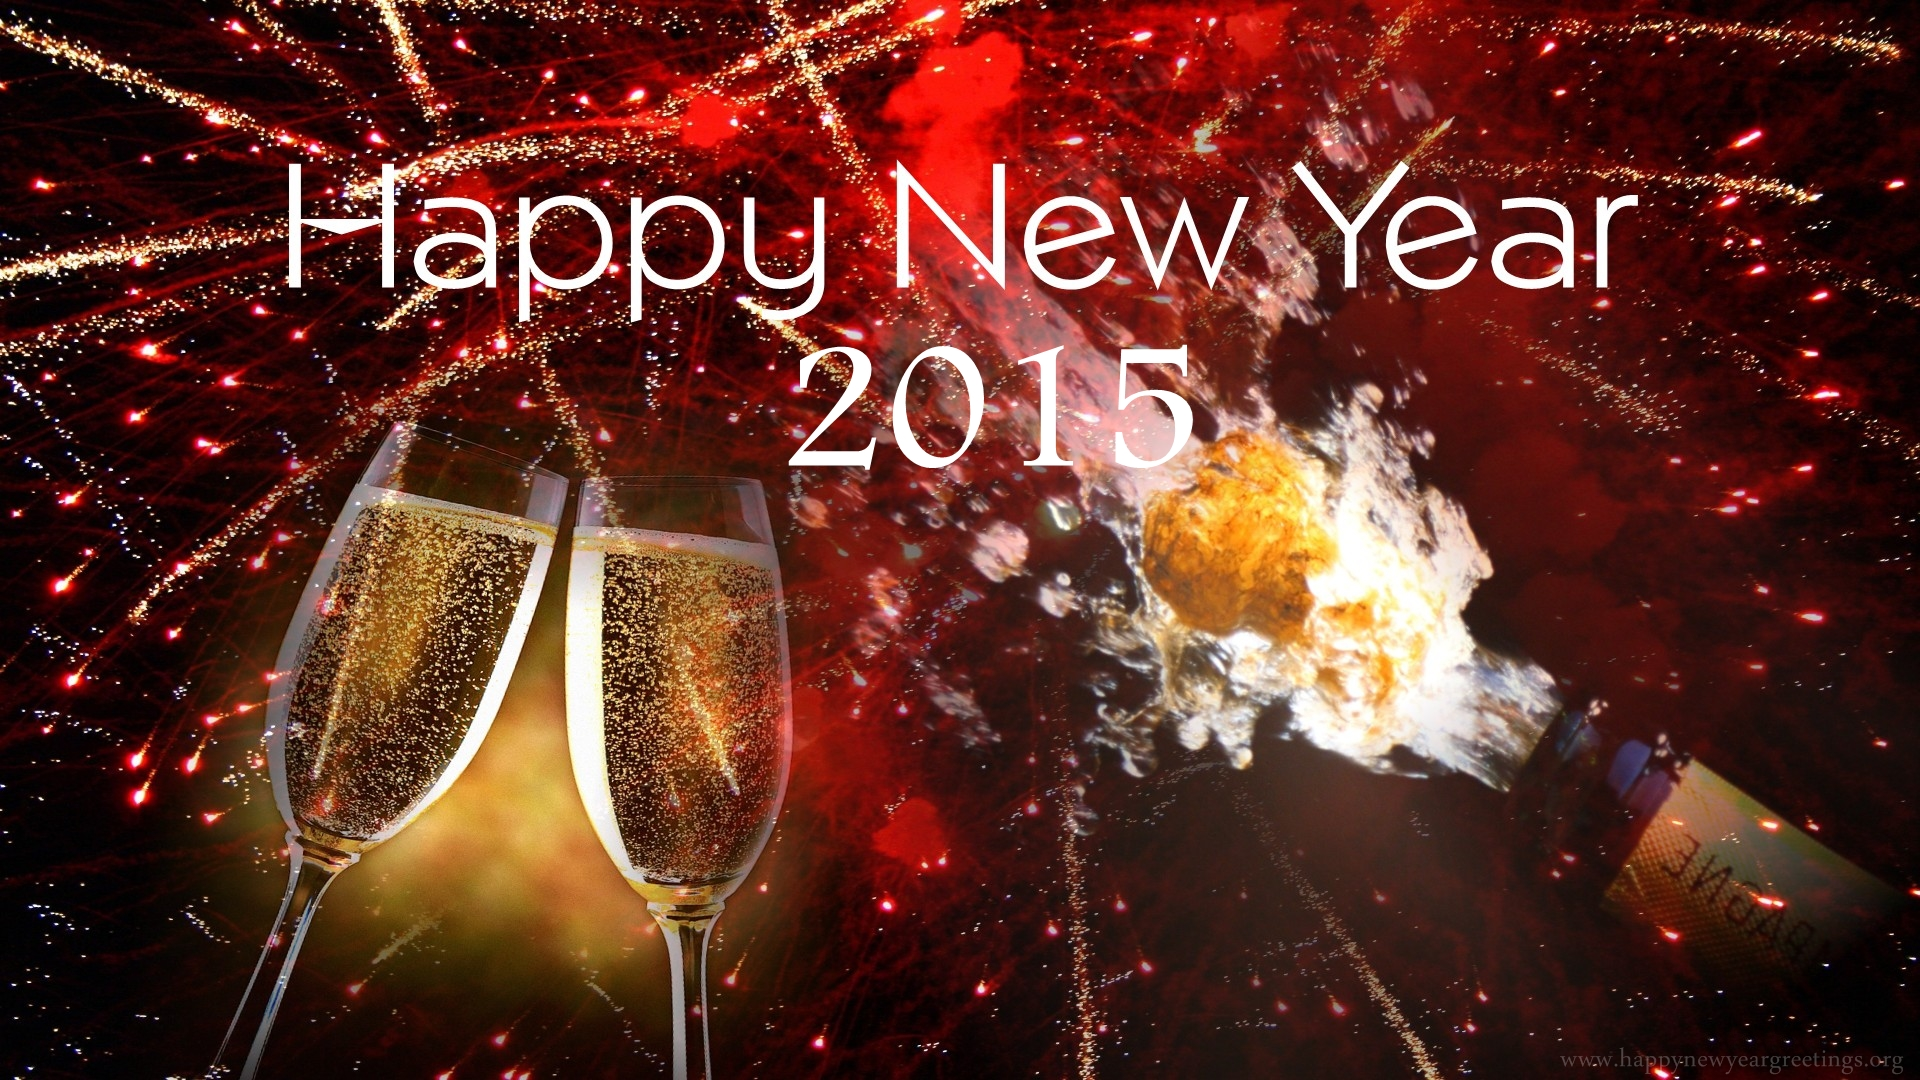 Happy New Year 2015 Wallpaper Collection Coddu Code Do 1920x1080